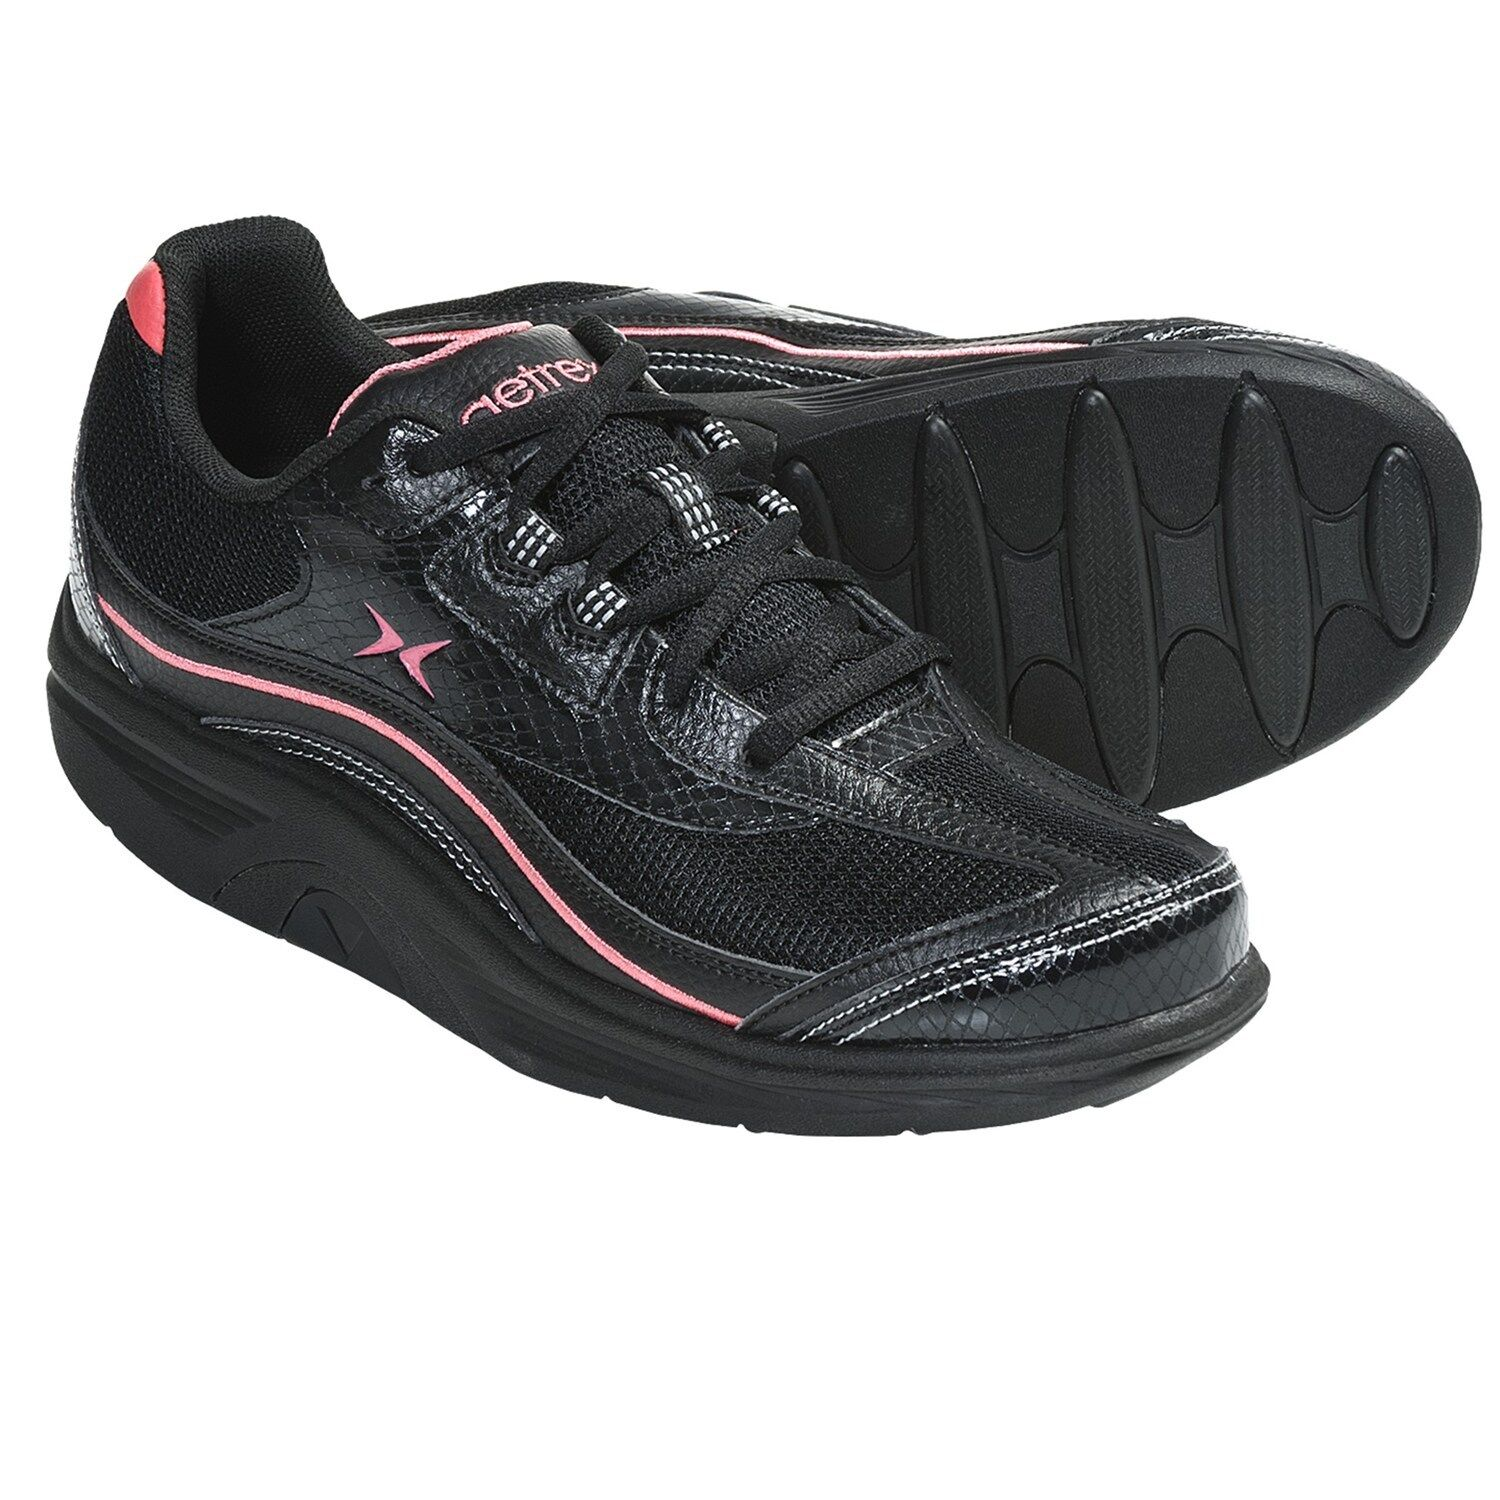 aetrex works fitness sneakers athletic sport shoes